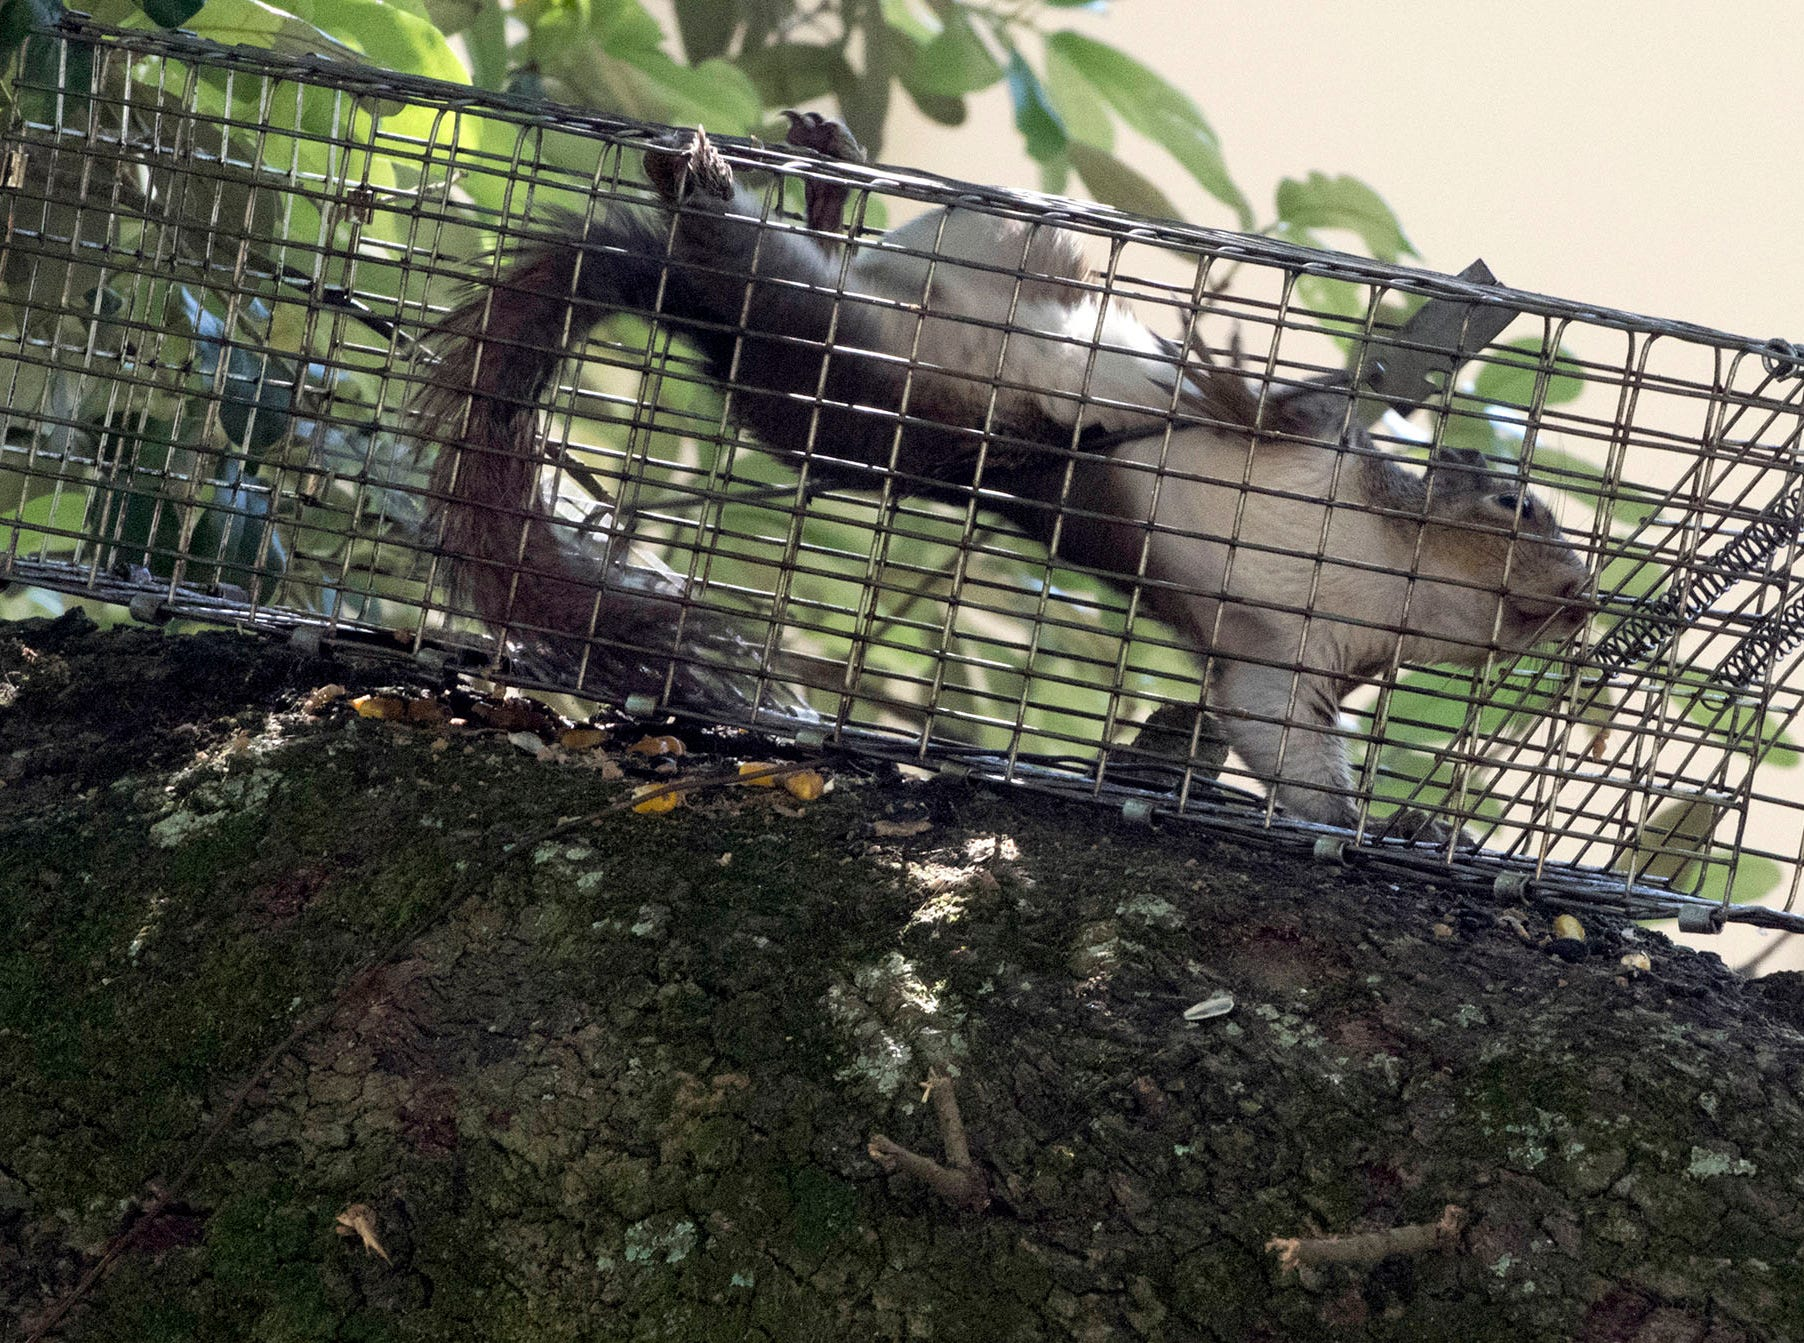 A trapped squirrel being removed from homeowner's property in North Hill on Wednesday, May 15, 2019. Nuisance Wildlife Removal launched a humane wildlife removal company in the Pensacola area on April 1.